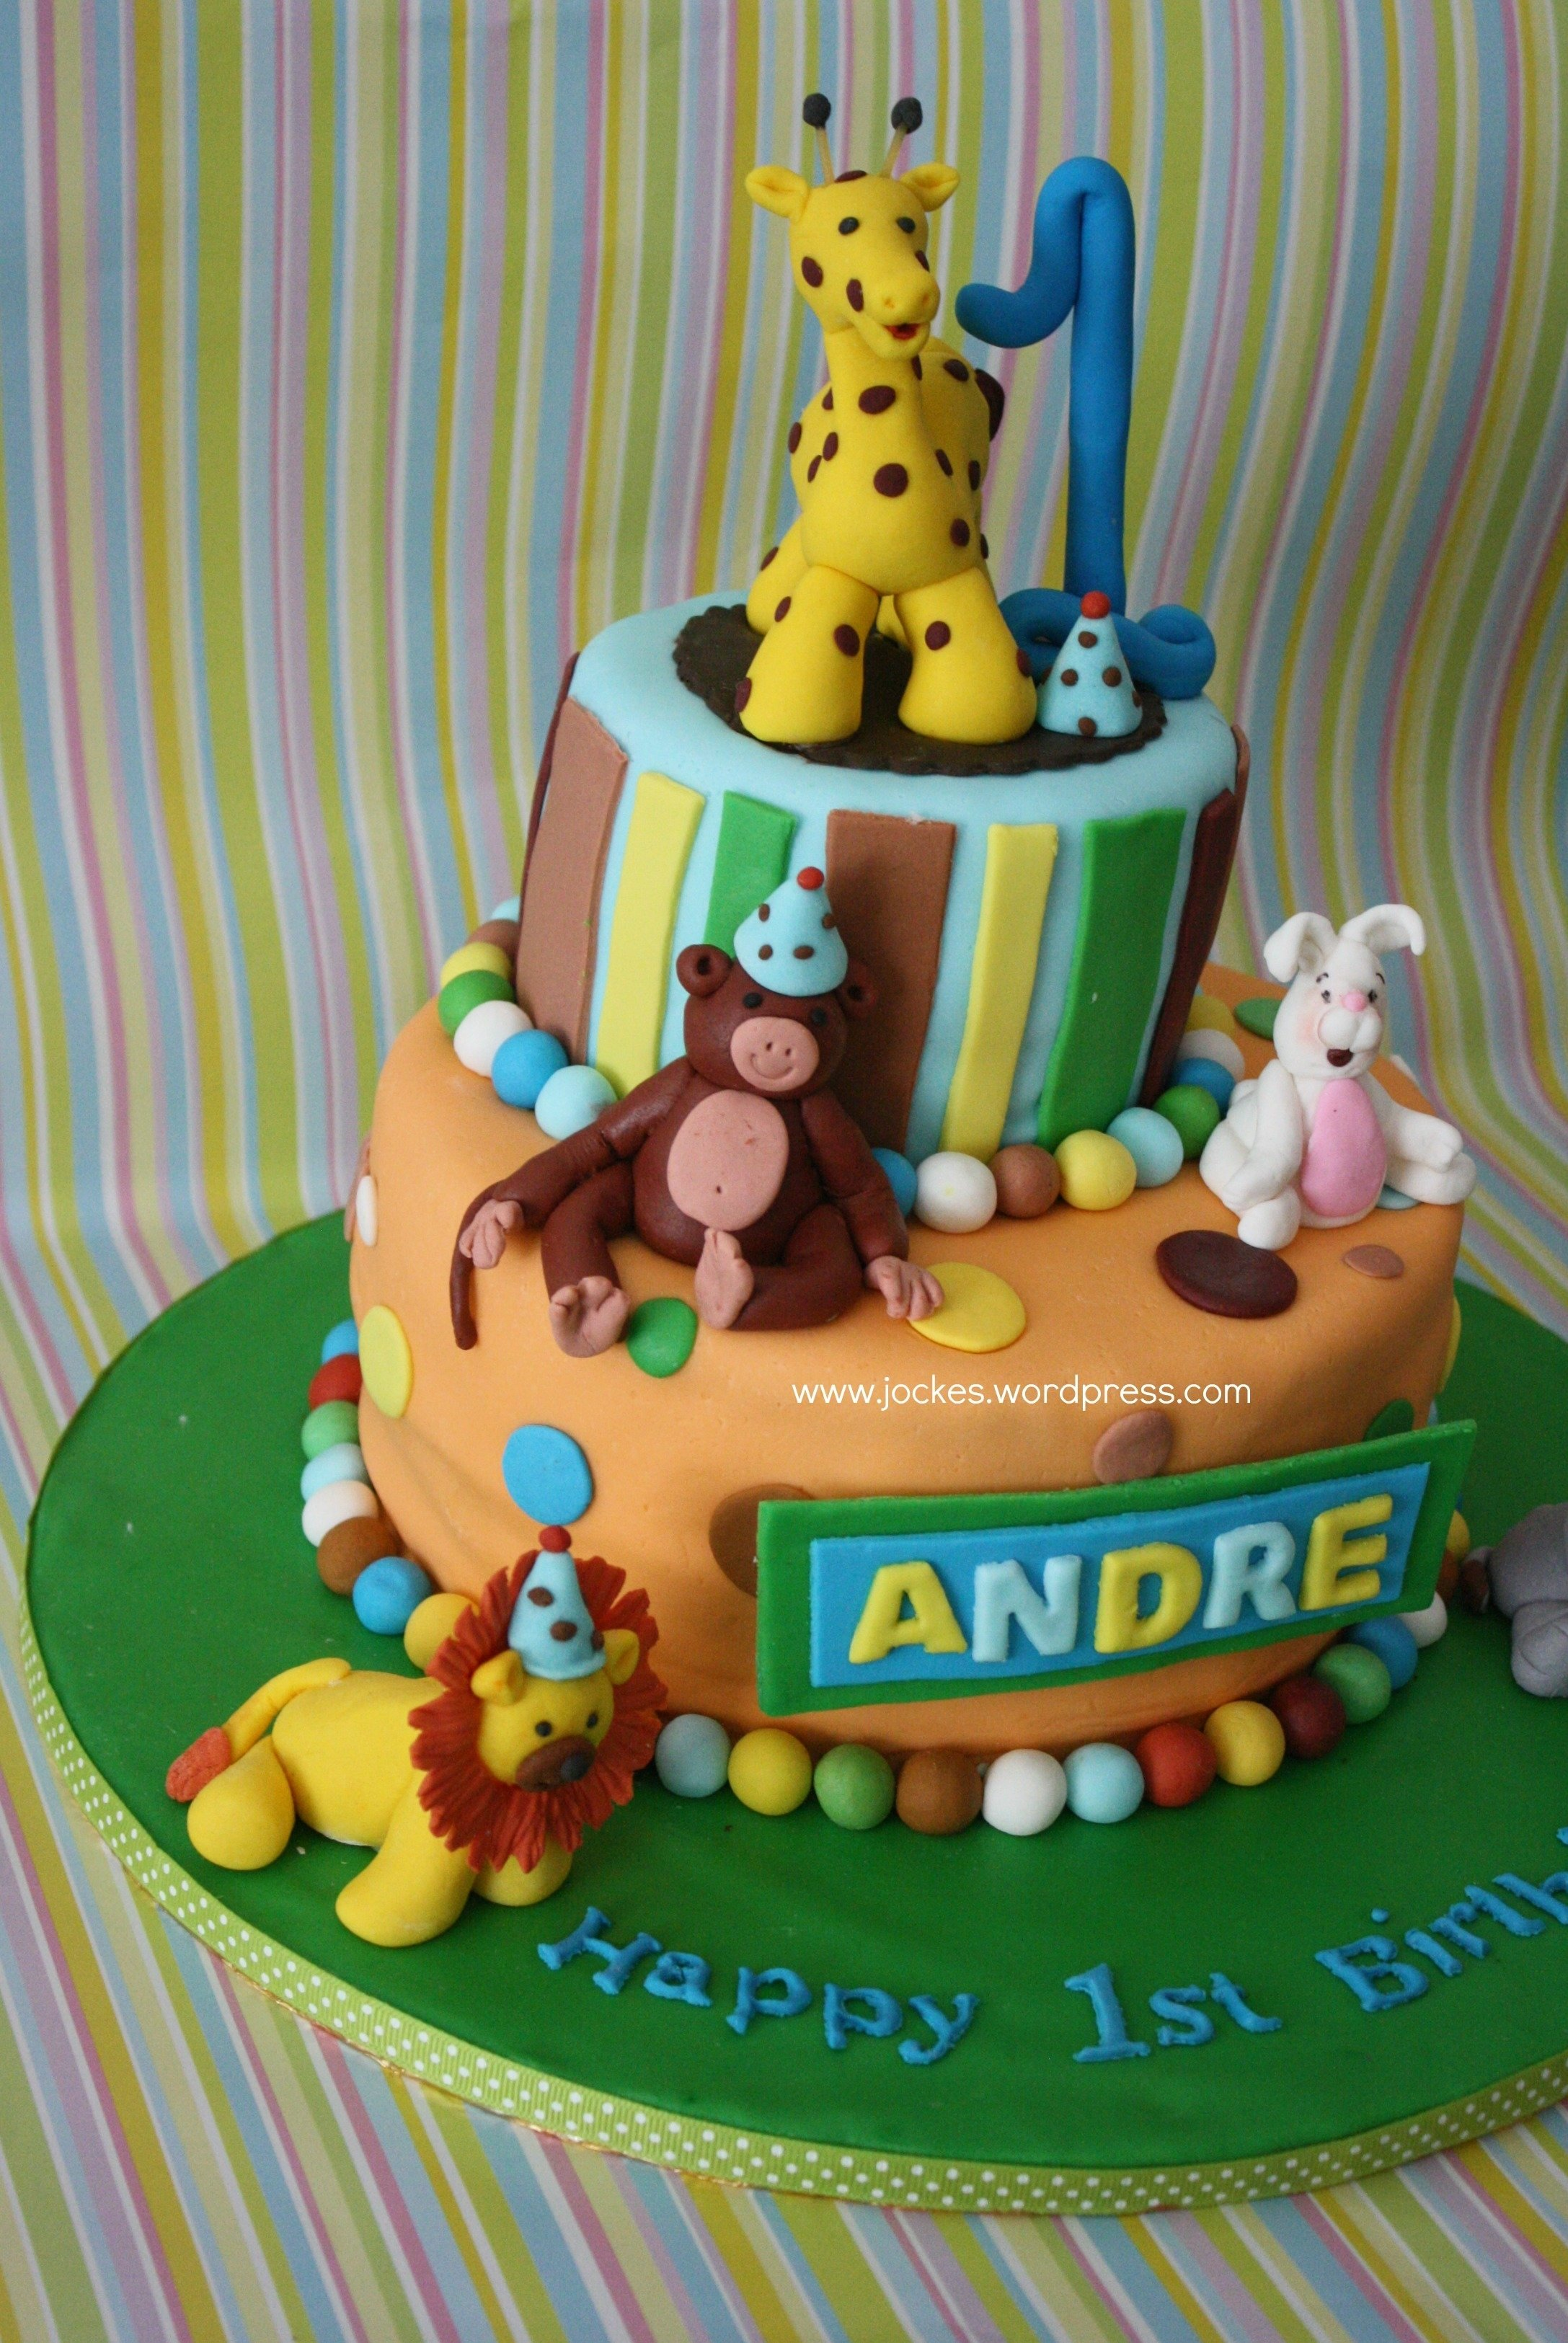 10 Famous 1 Year Old Birthday Cake Ideas birthday cakes for 1 year olds boy google search cookery recipes